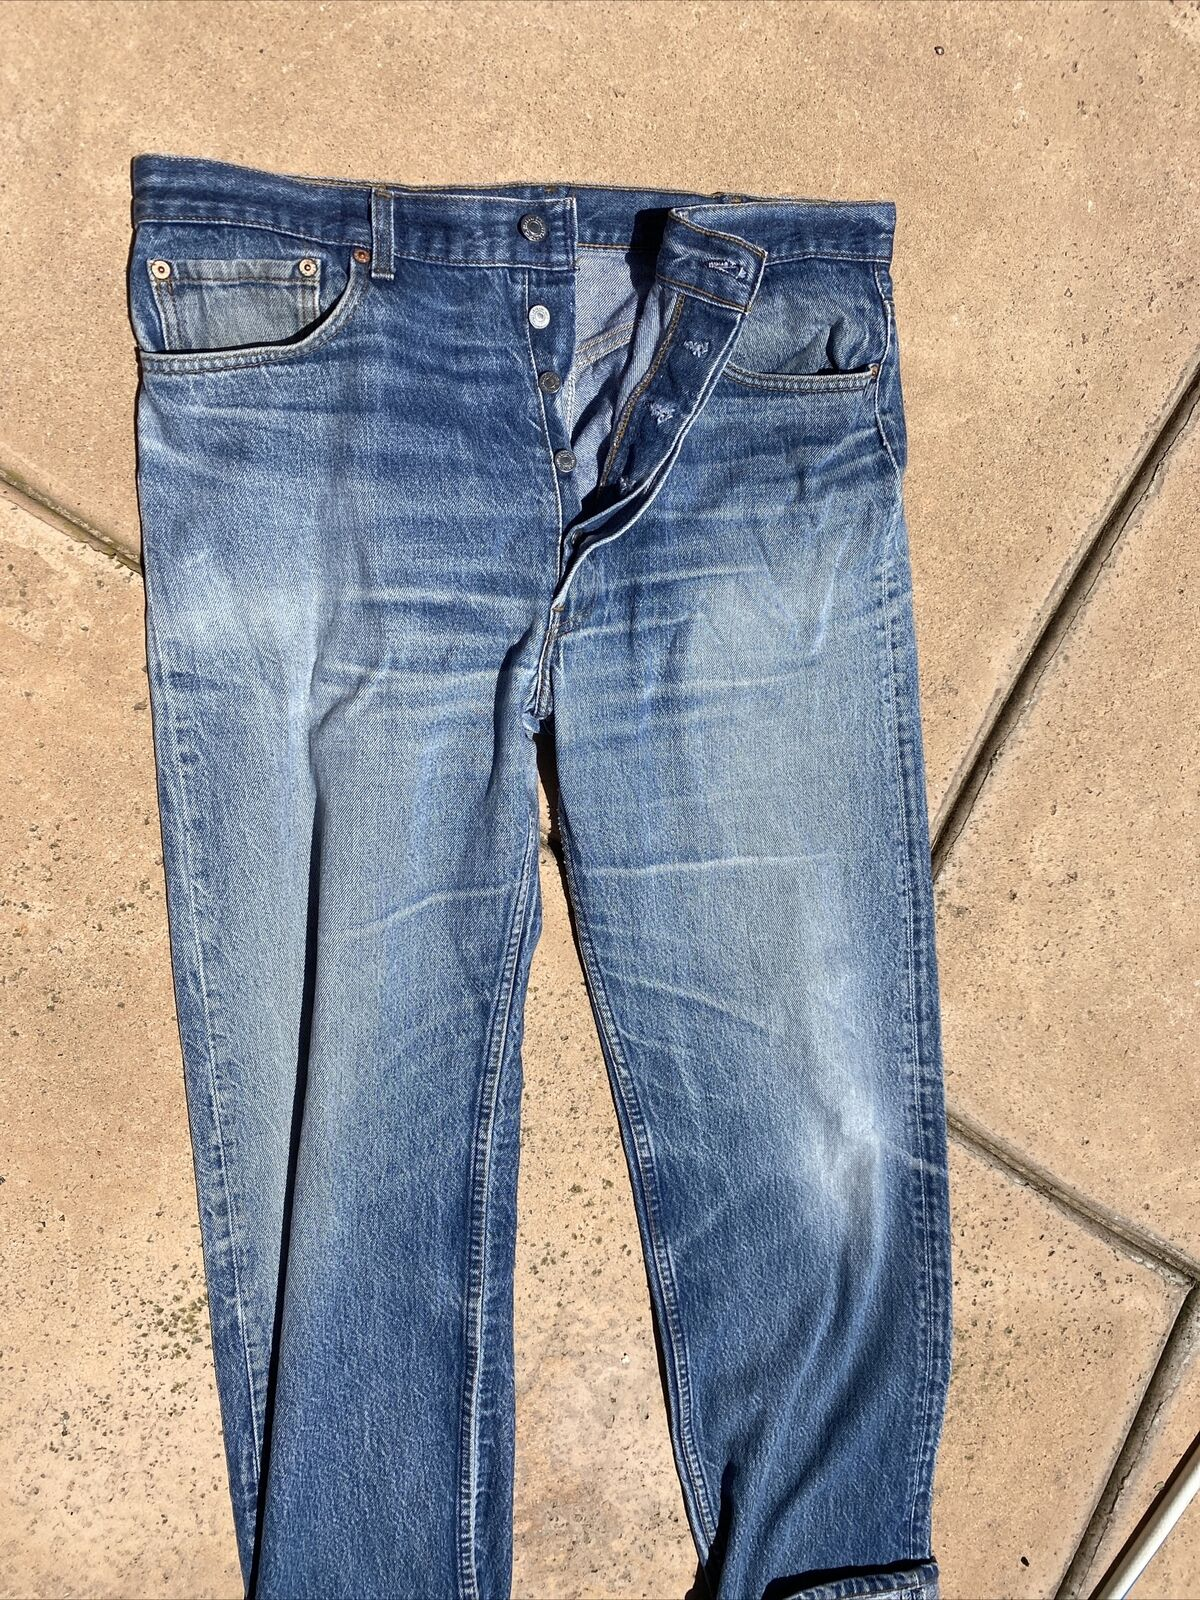 vintage levis jeans 501 made in usa  - image 3